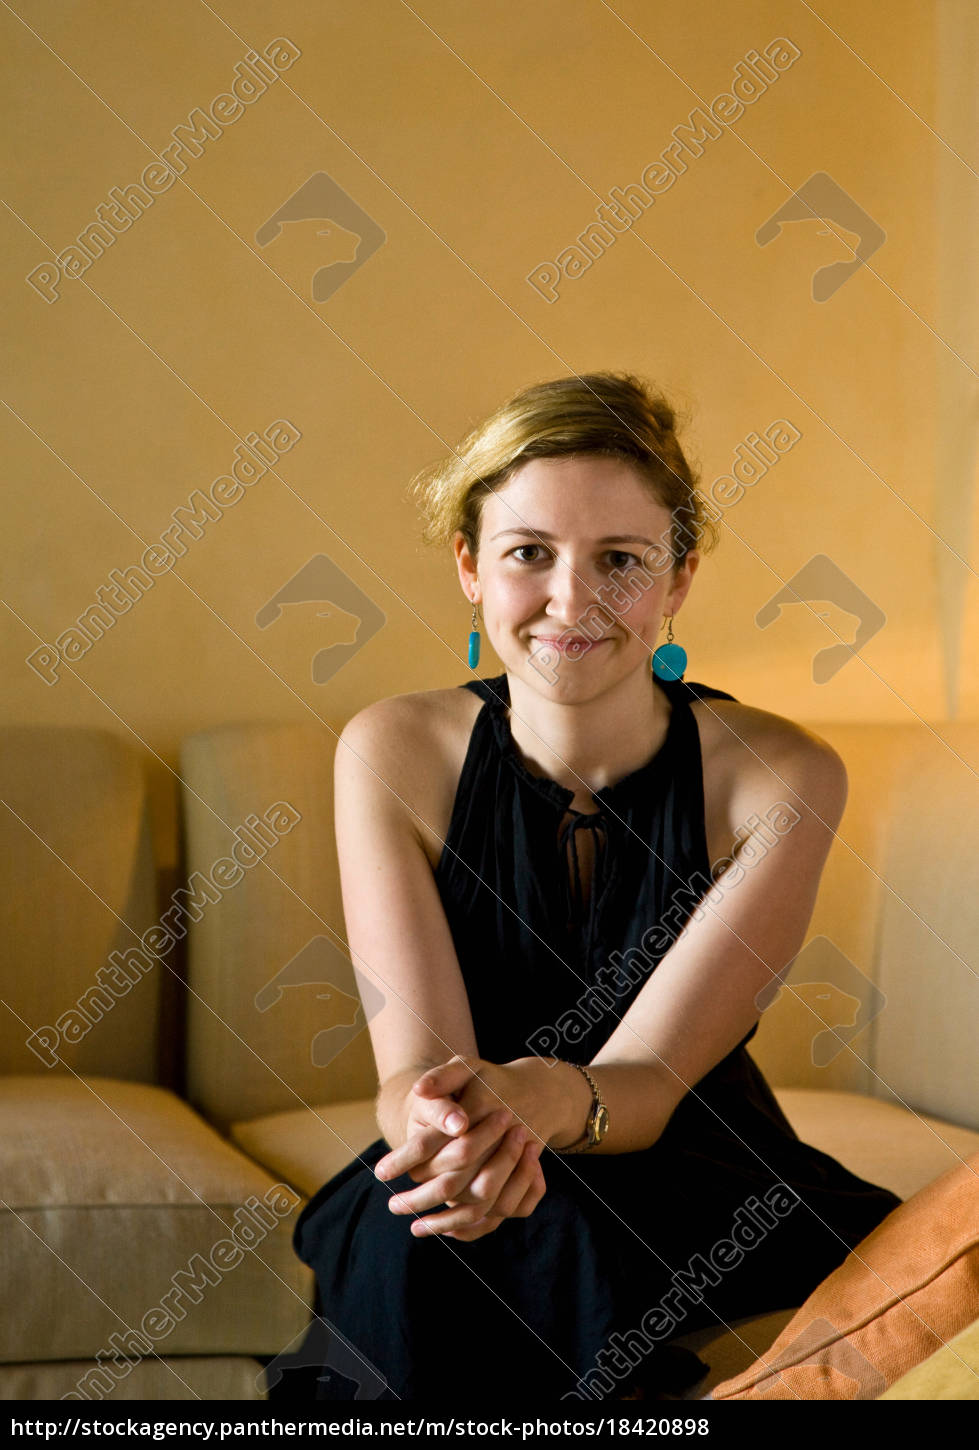 portrait, of, a, woman, sitting, on - 18420898